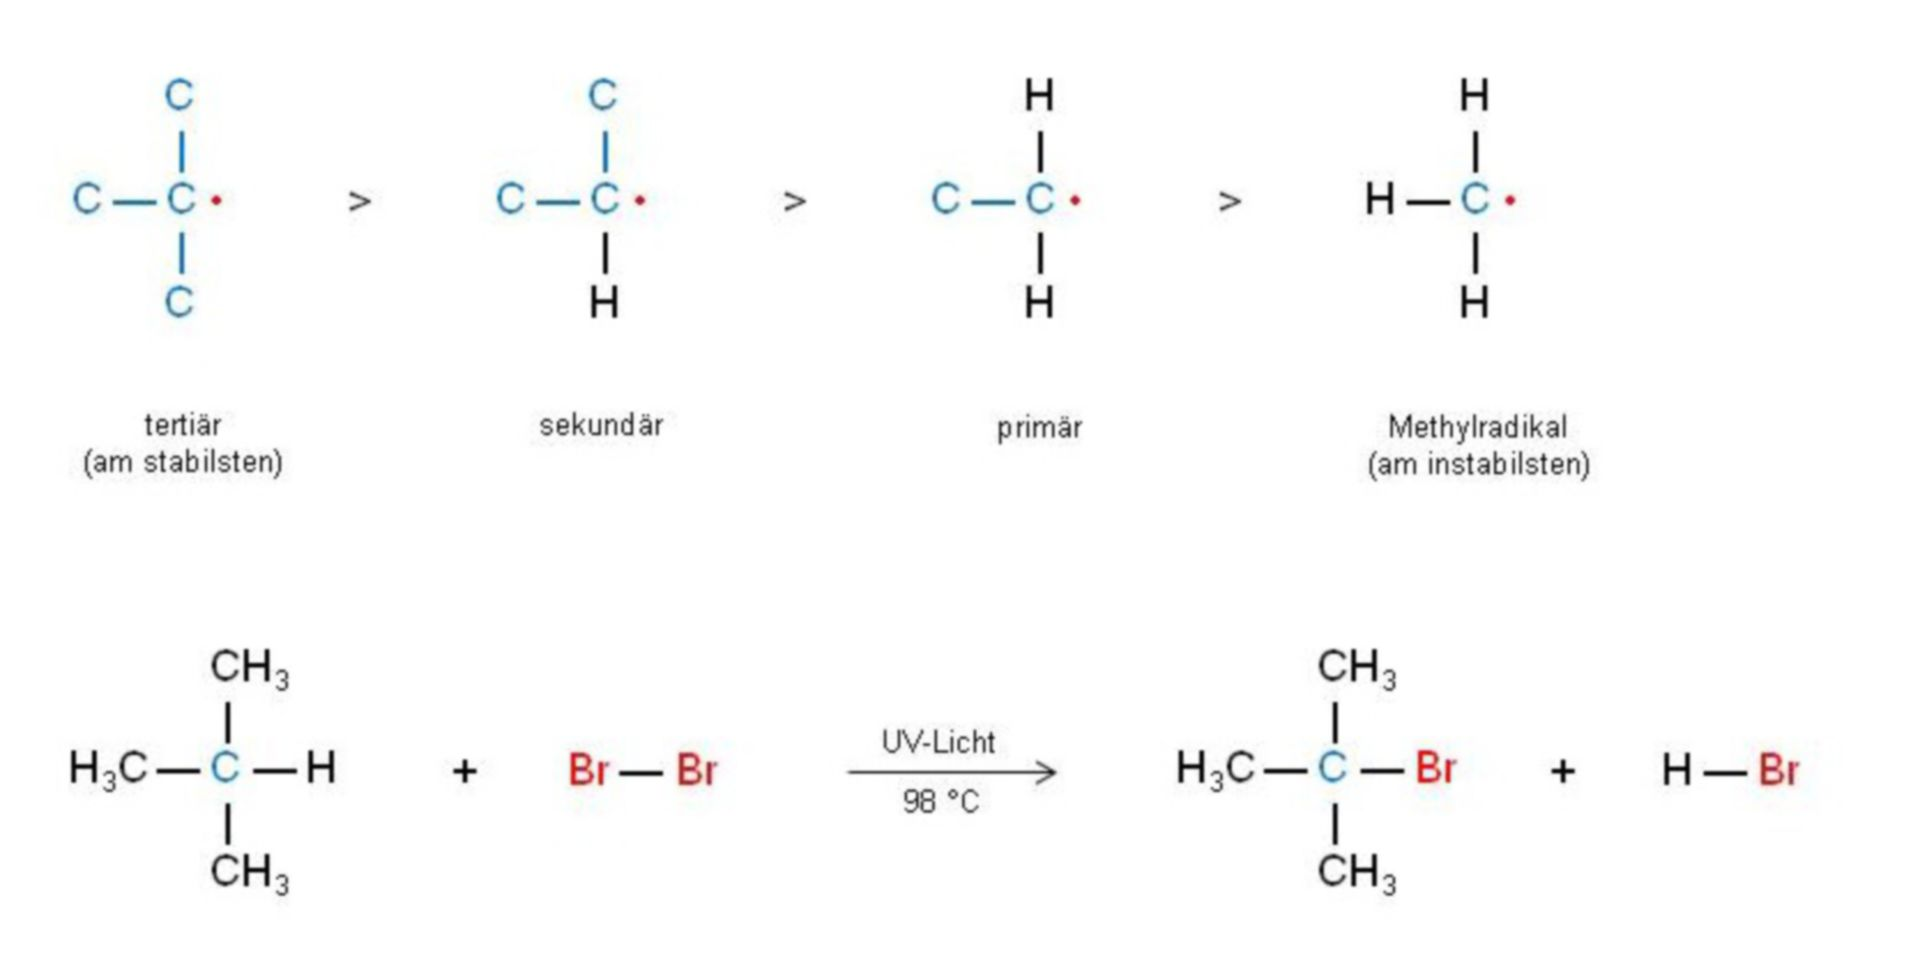 Formation likelyhood and stability of carbohydrate radicals